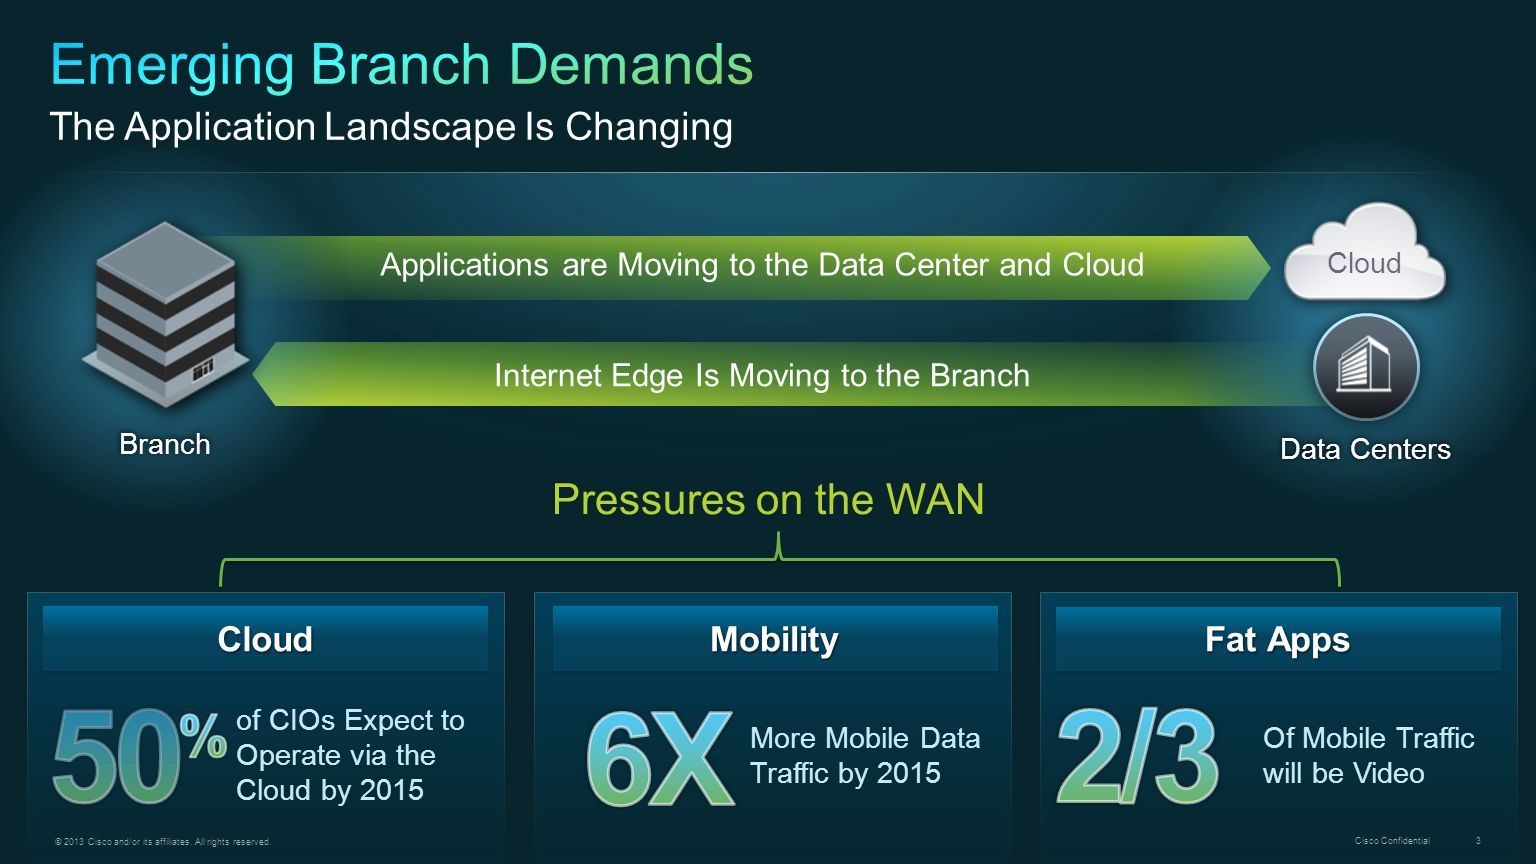 Emerging Branch Demands The Application Landscape Is Changing